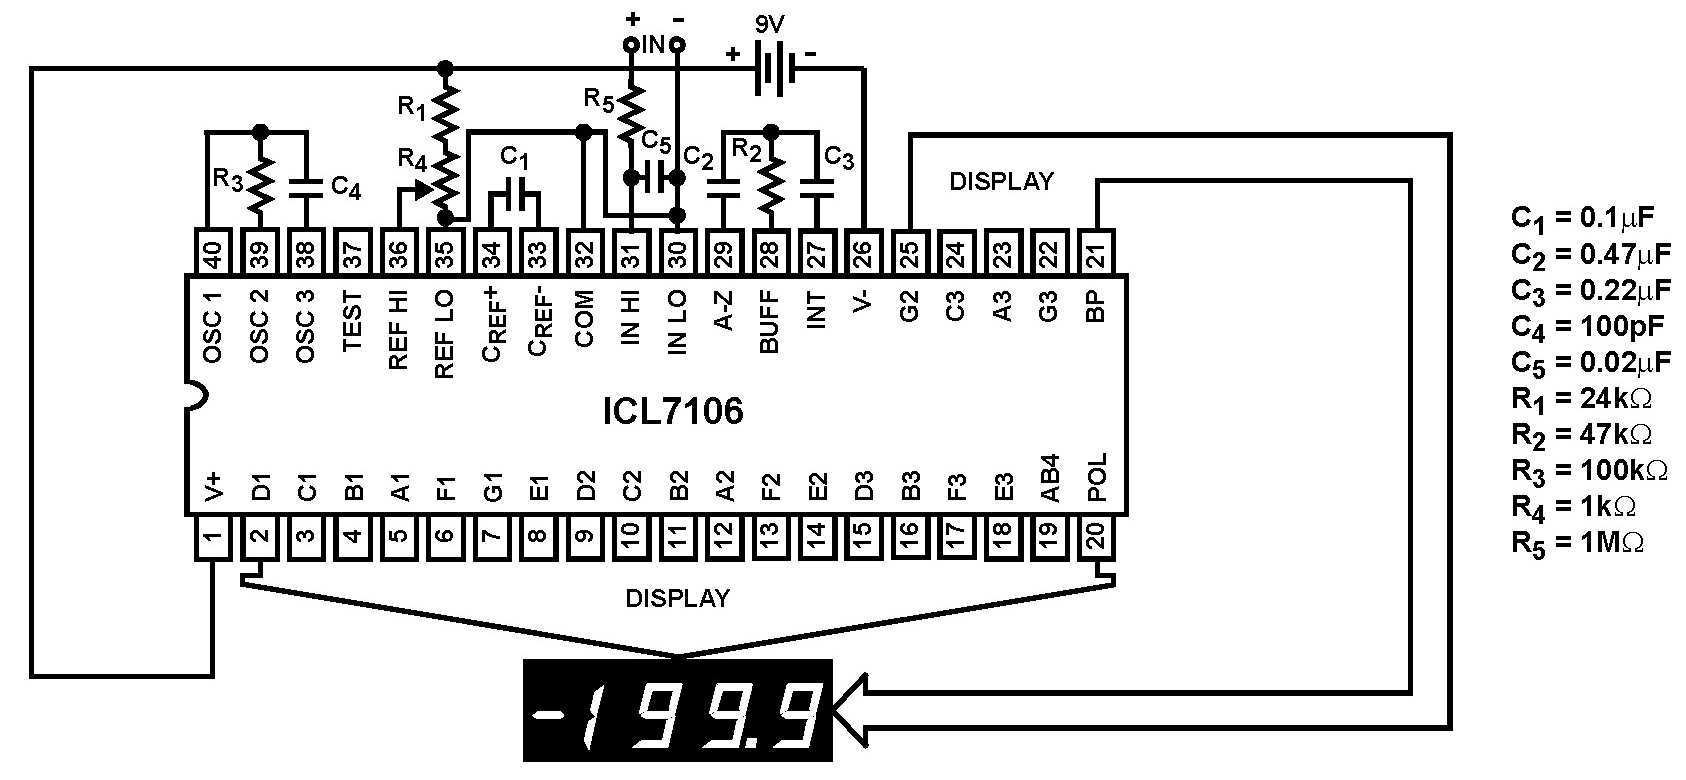 Icl7106 Voltmeter Schematic Automotive Wiring Diagram And Icl7107 3 1 2 Digit Lcd Led Display A D Converters Pin Digital Circuit On Pinterest In